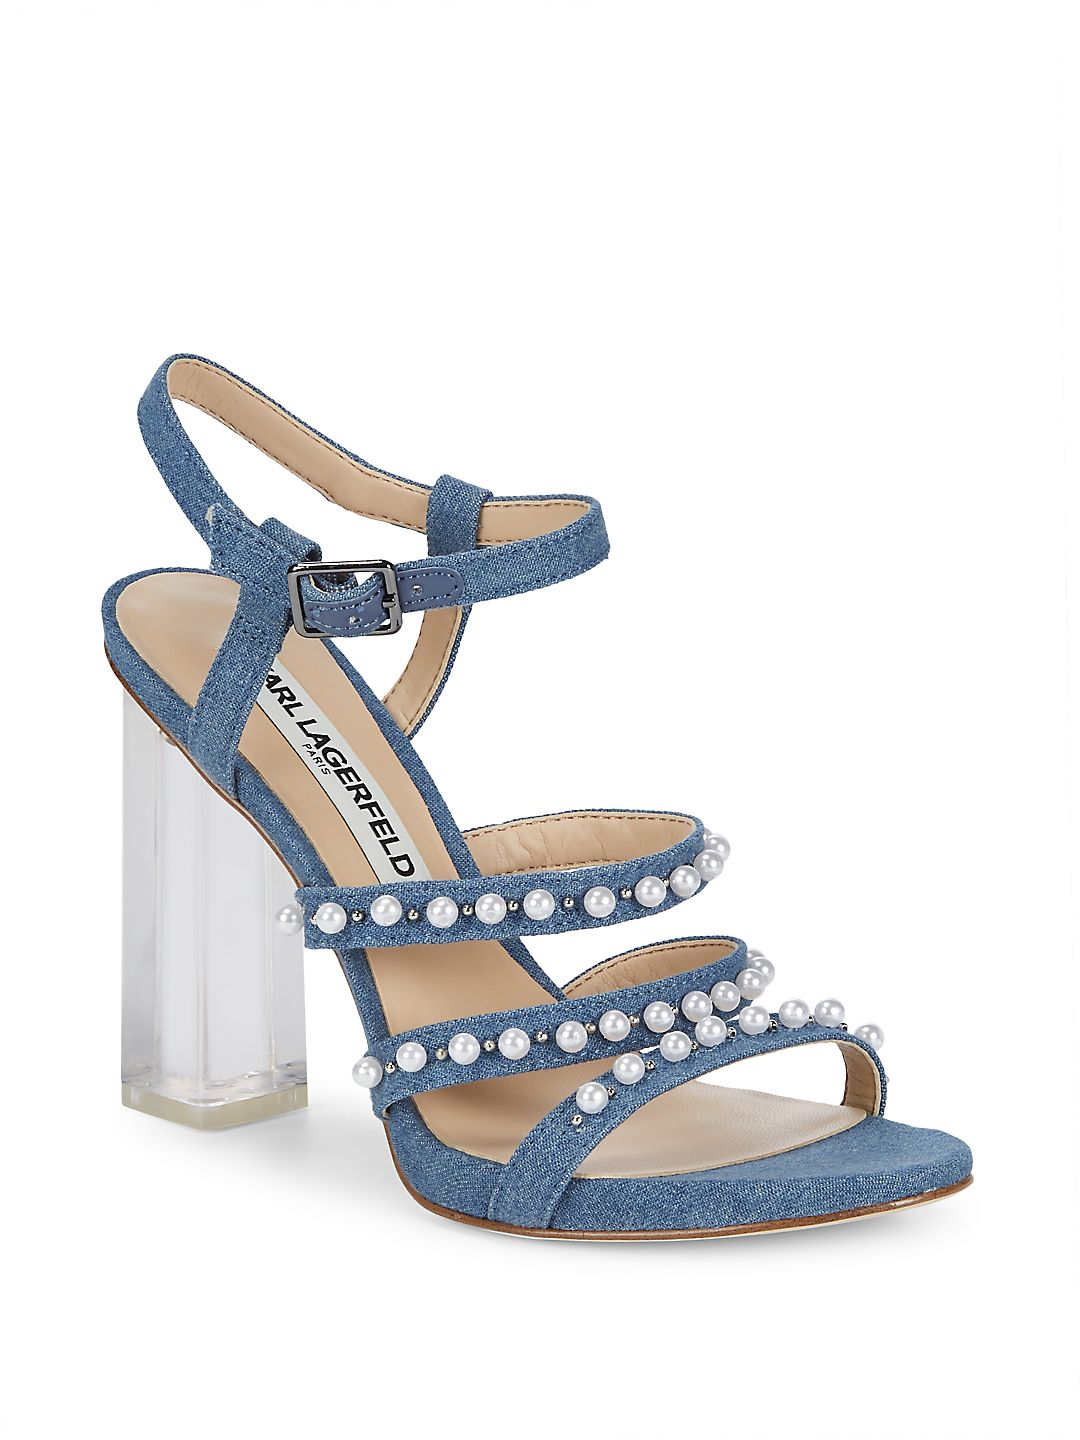 Lara Denim Faux Pearl Sandals